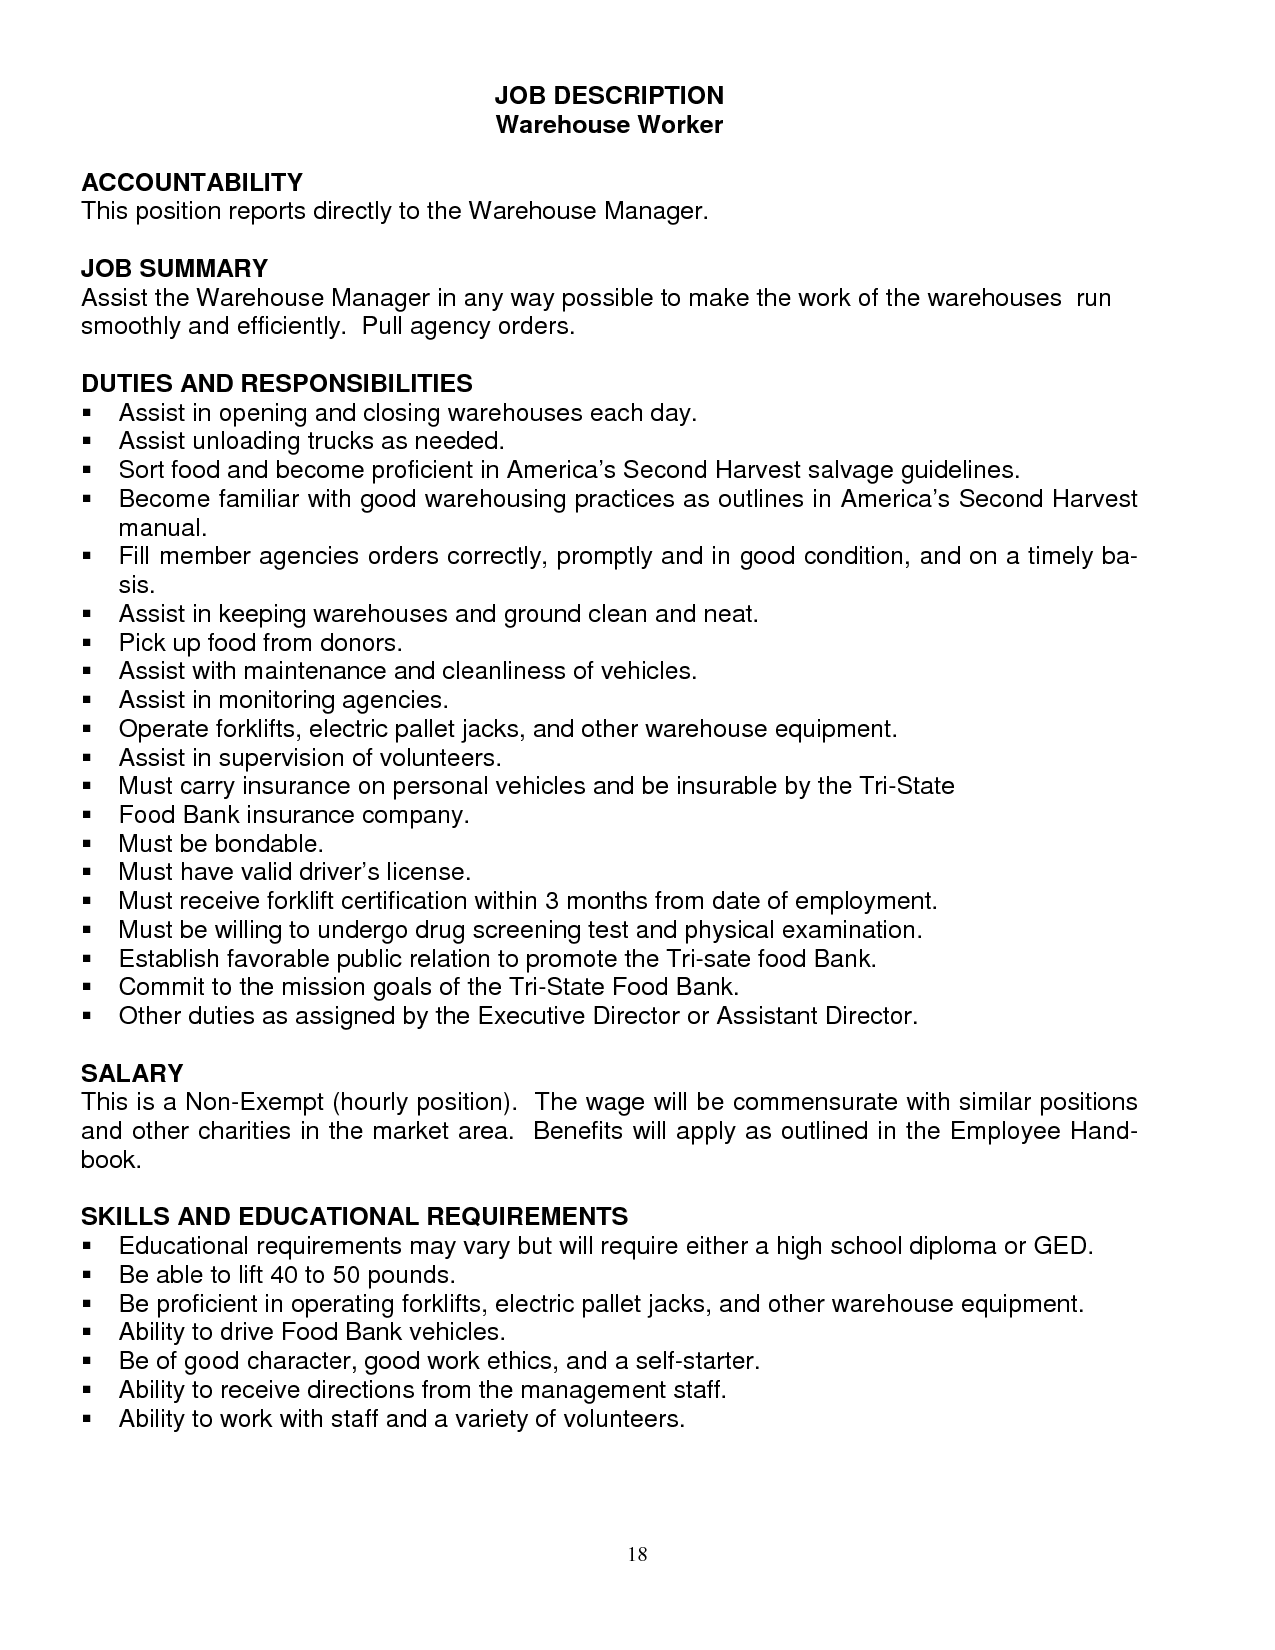 warehouse job description resume tikir reitschule pegasus co